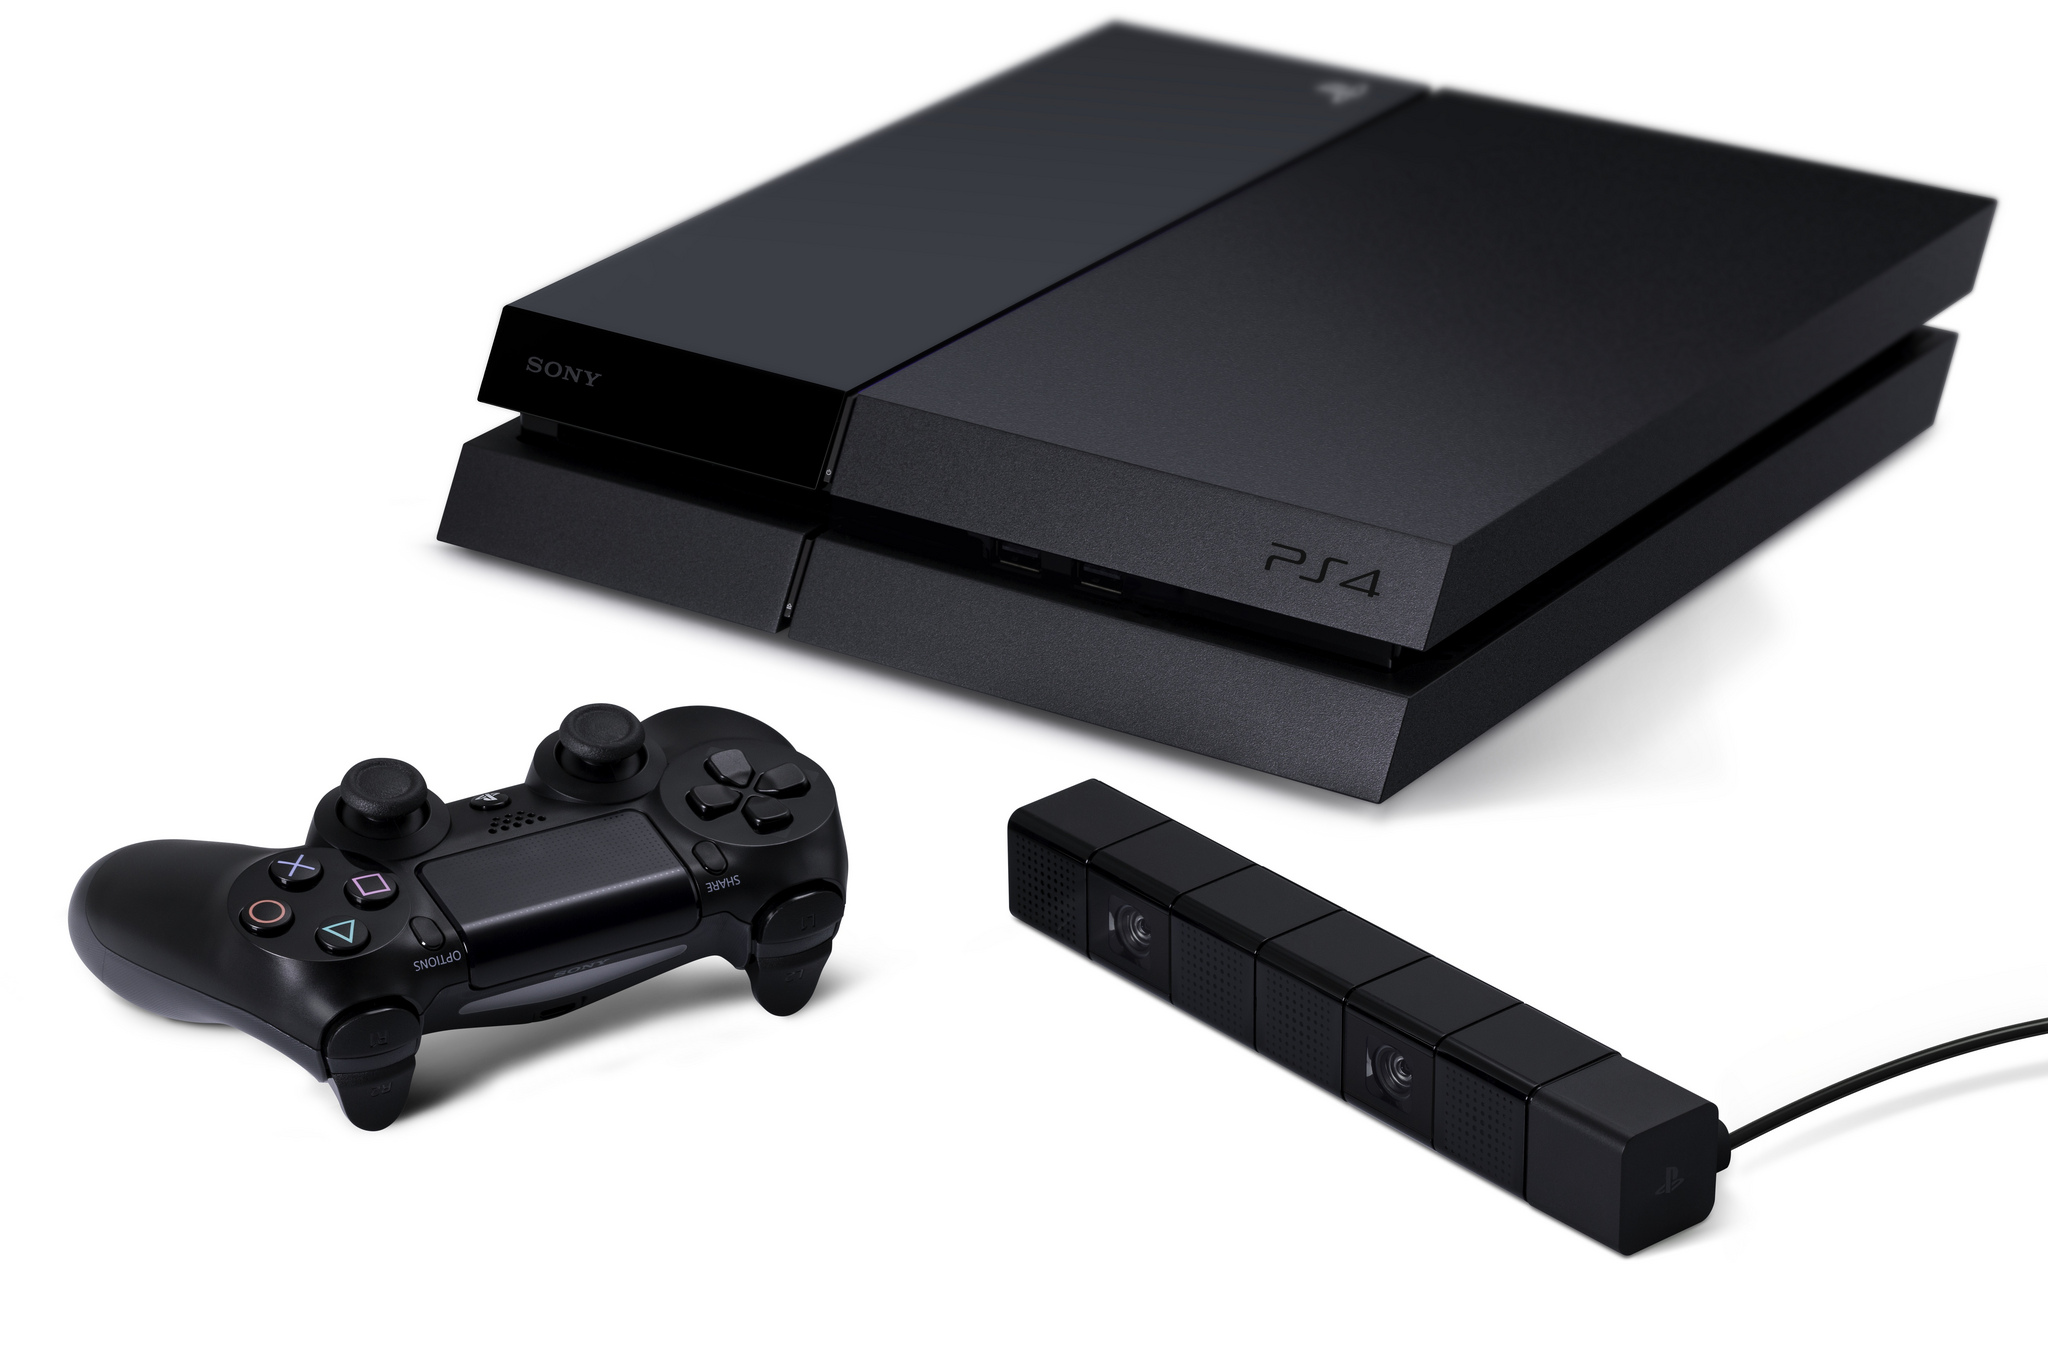 PlayStation 4 will cost $399 in the US, will release this holiday